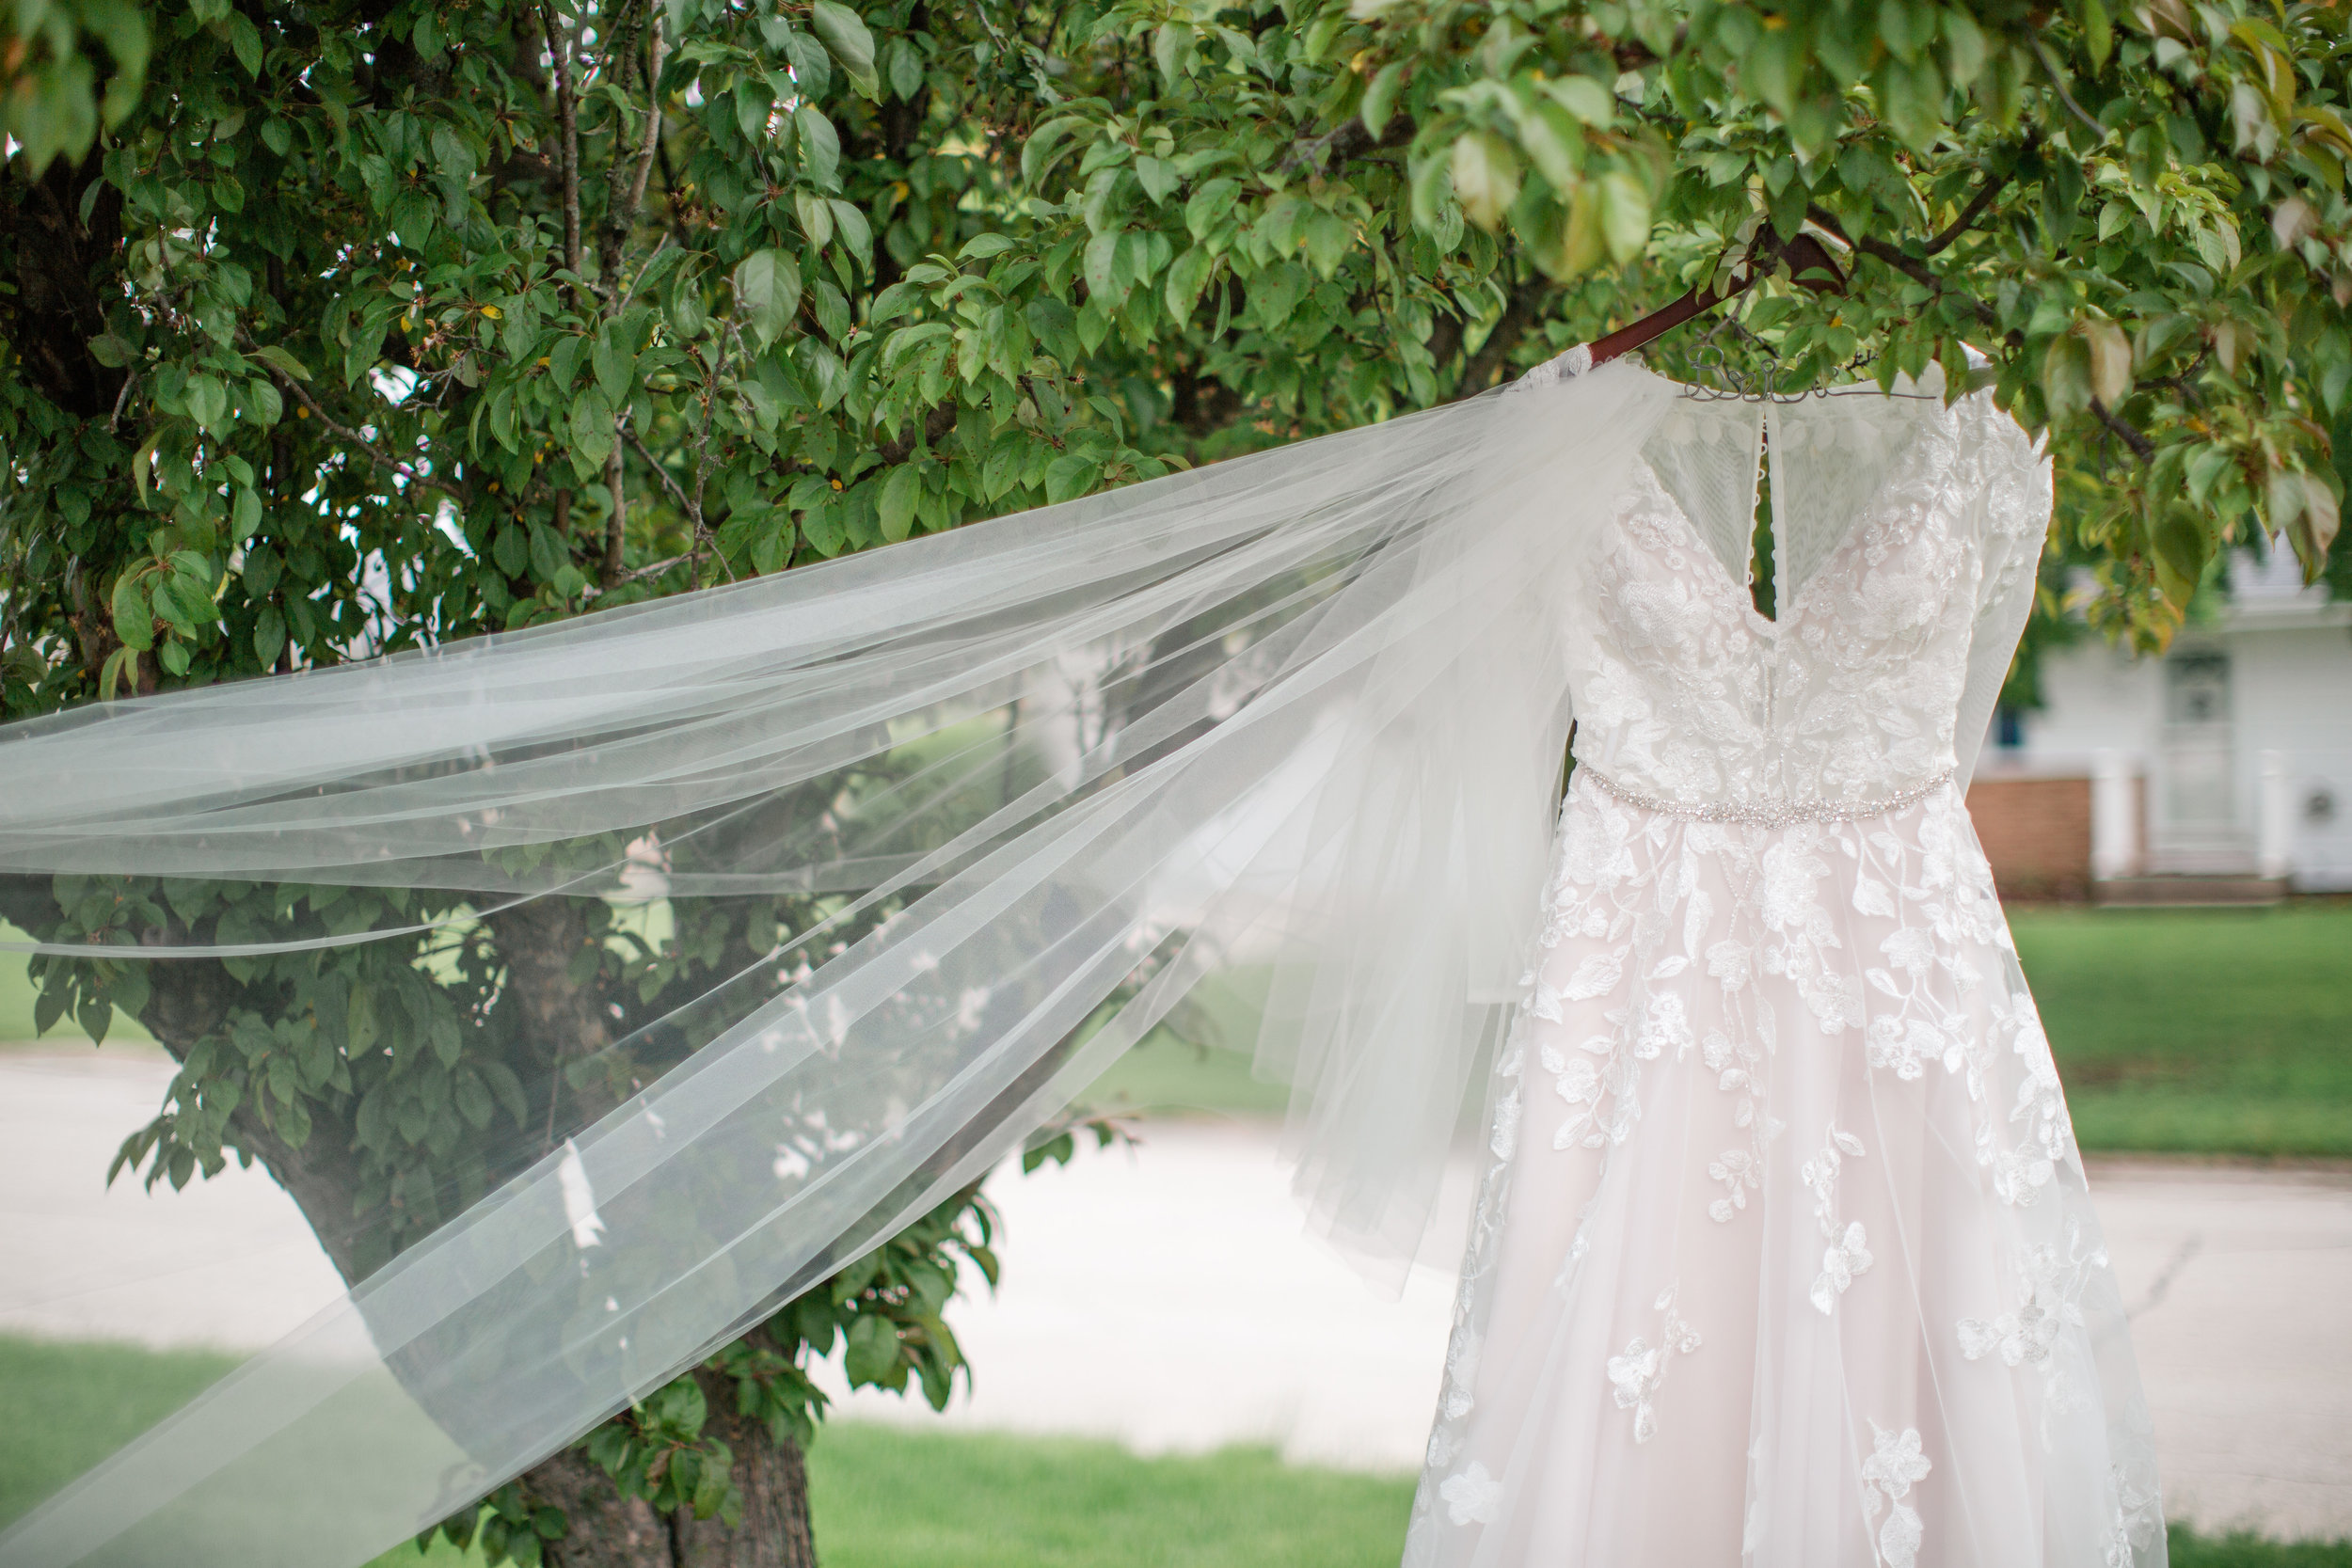 summerset-Iowa-wedding-vineyard-des-moines-wedding-dress